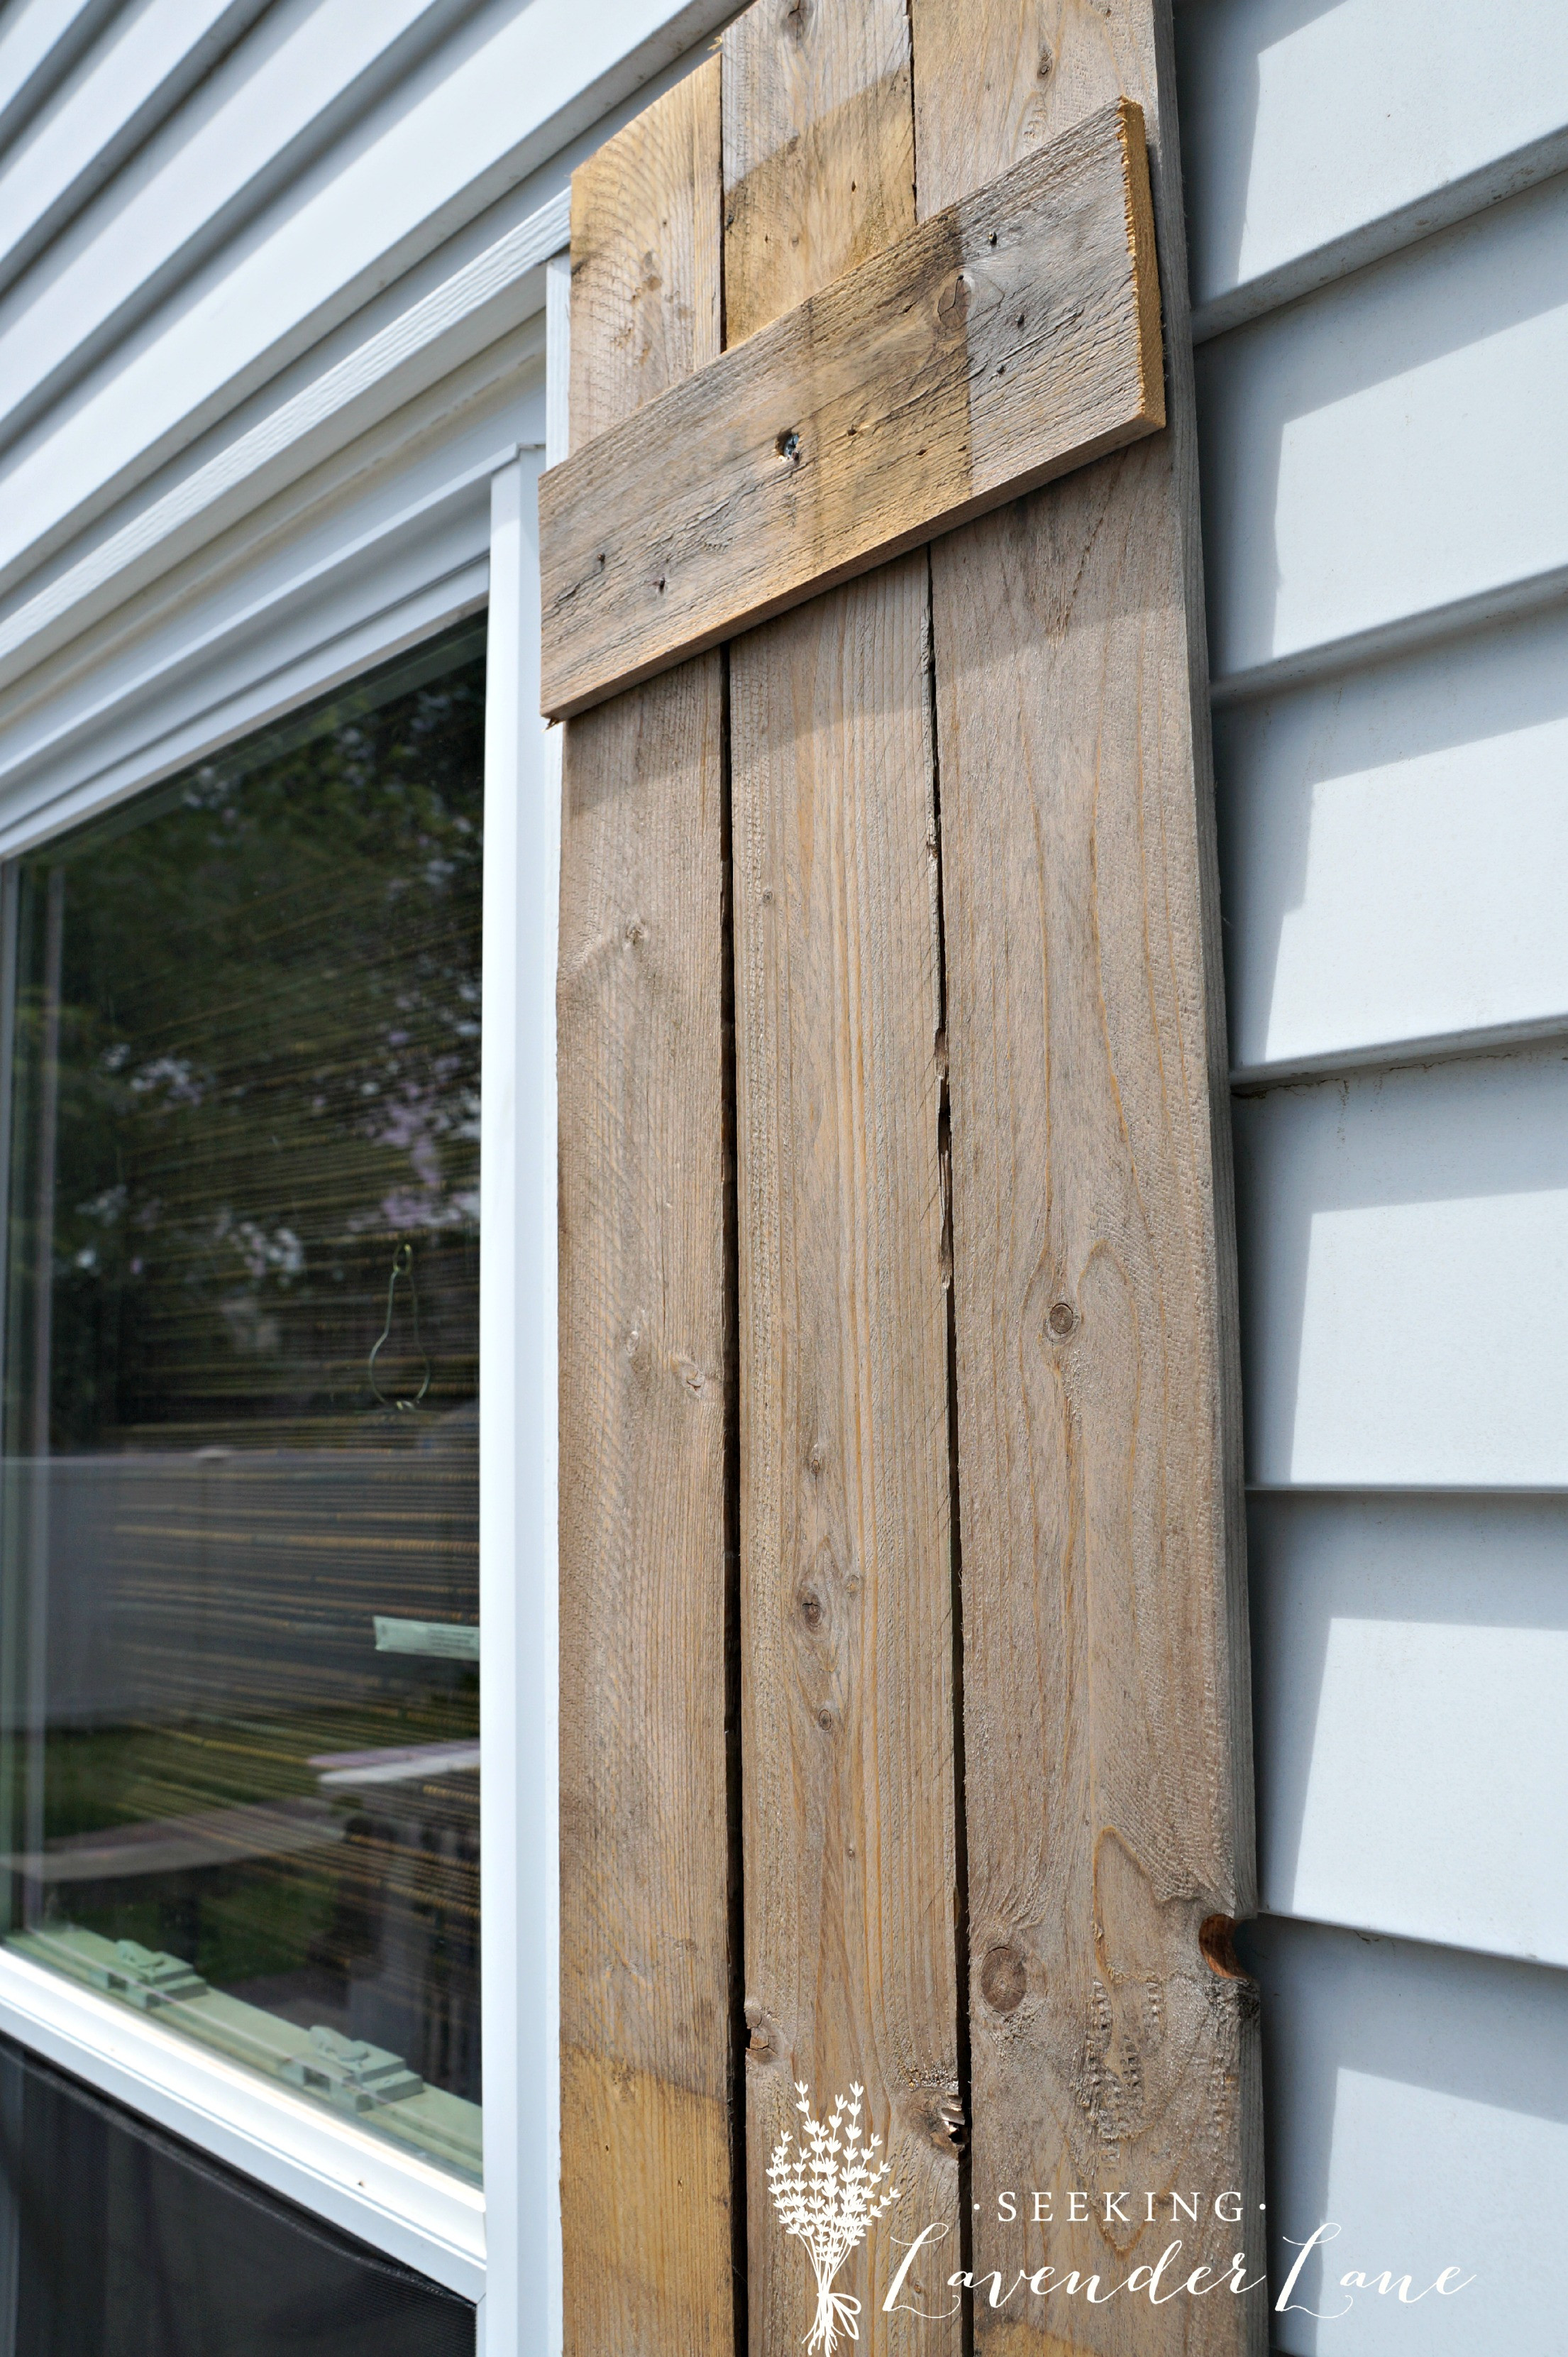 Best ideas about DIY Wood Shutters . Save or Pin DIY Wood Shutters for $0 Now.